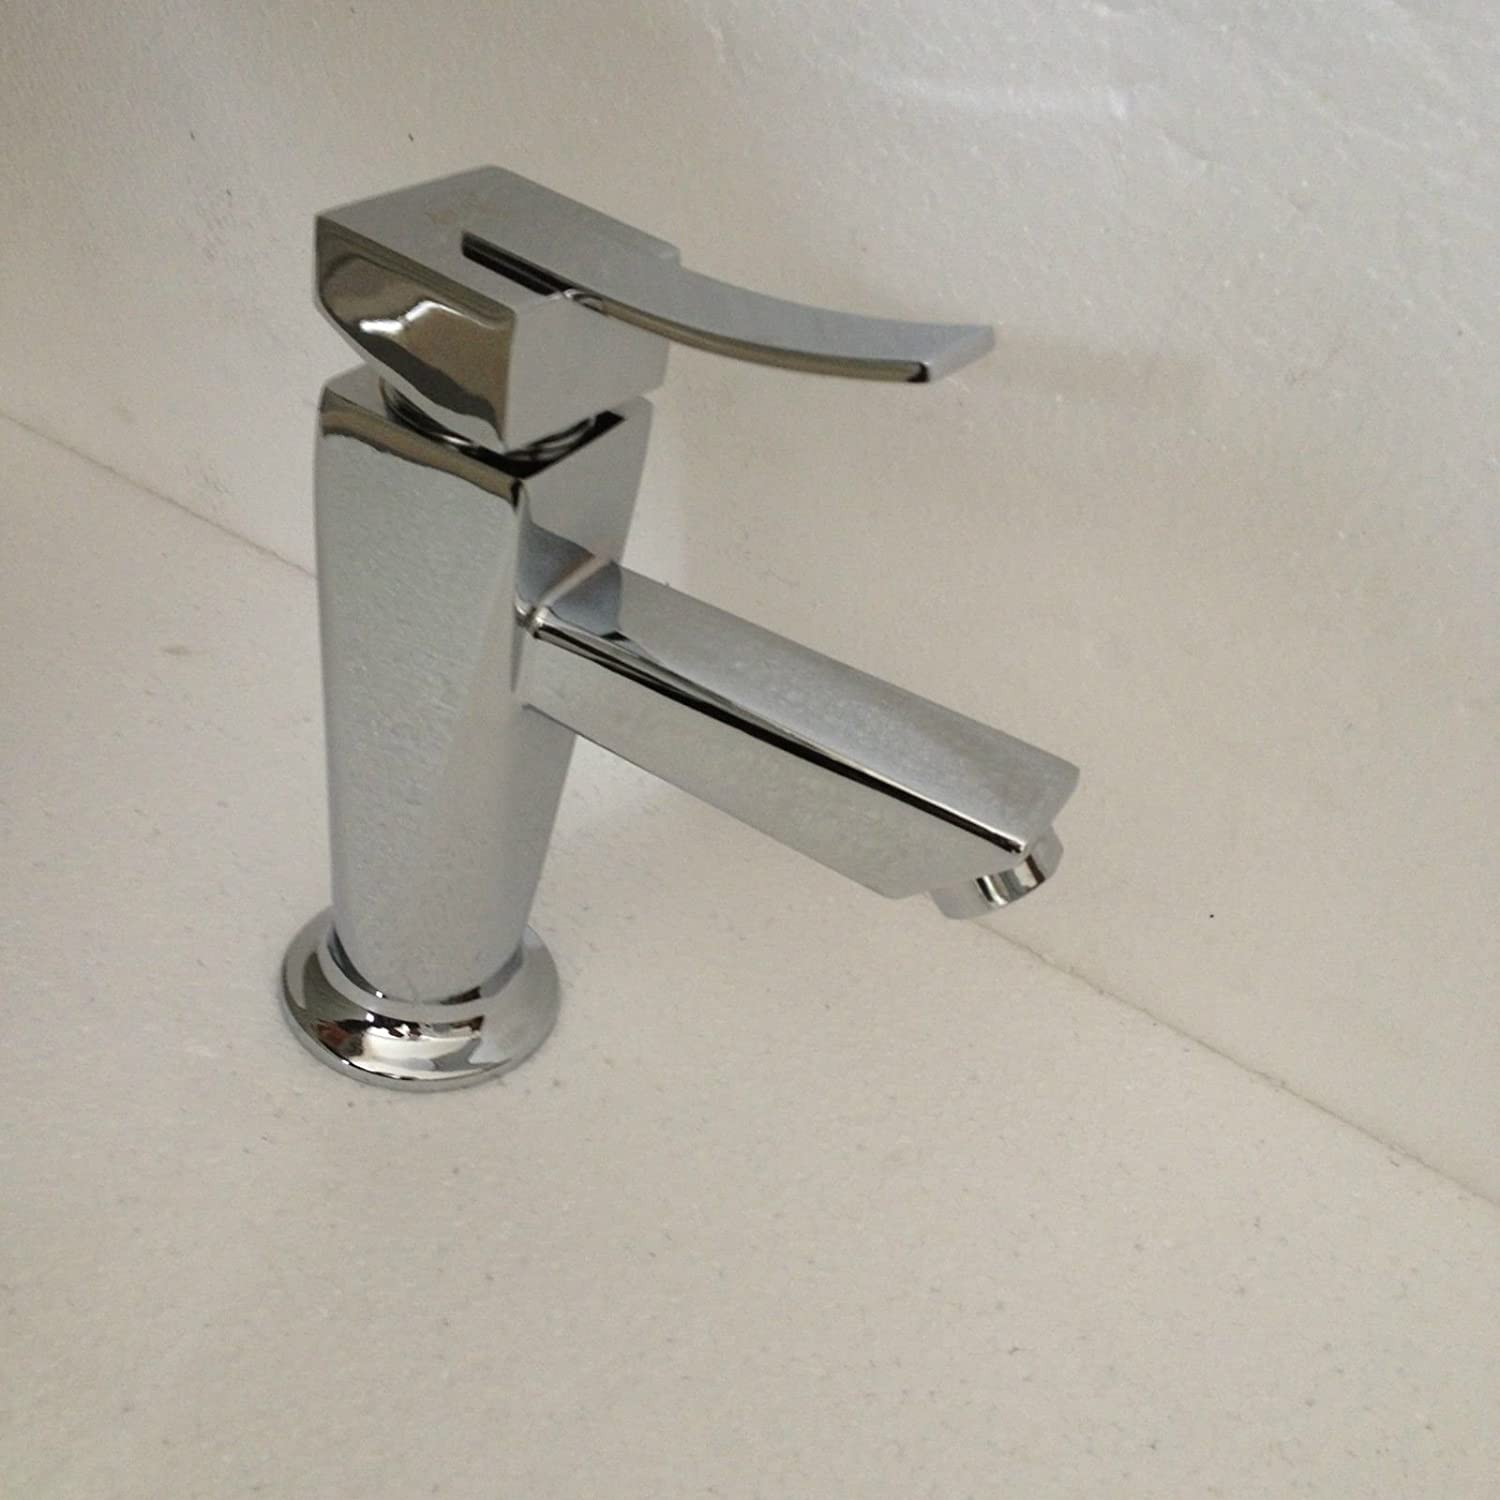 Kitchen Sink Faucet Modern Kitchen Sink Basin Mixer Tap Hot and Cold Water Tall Mixer Tap